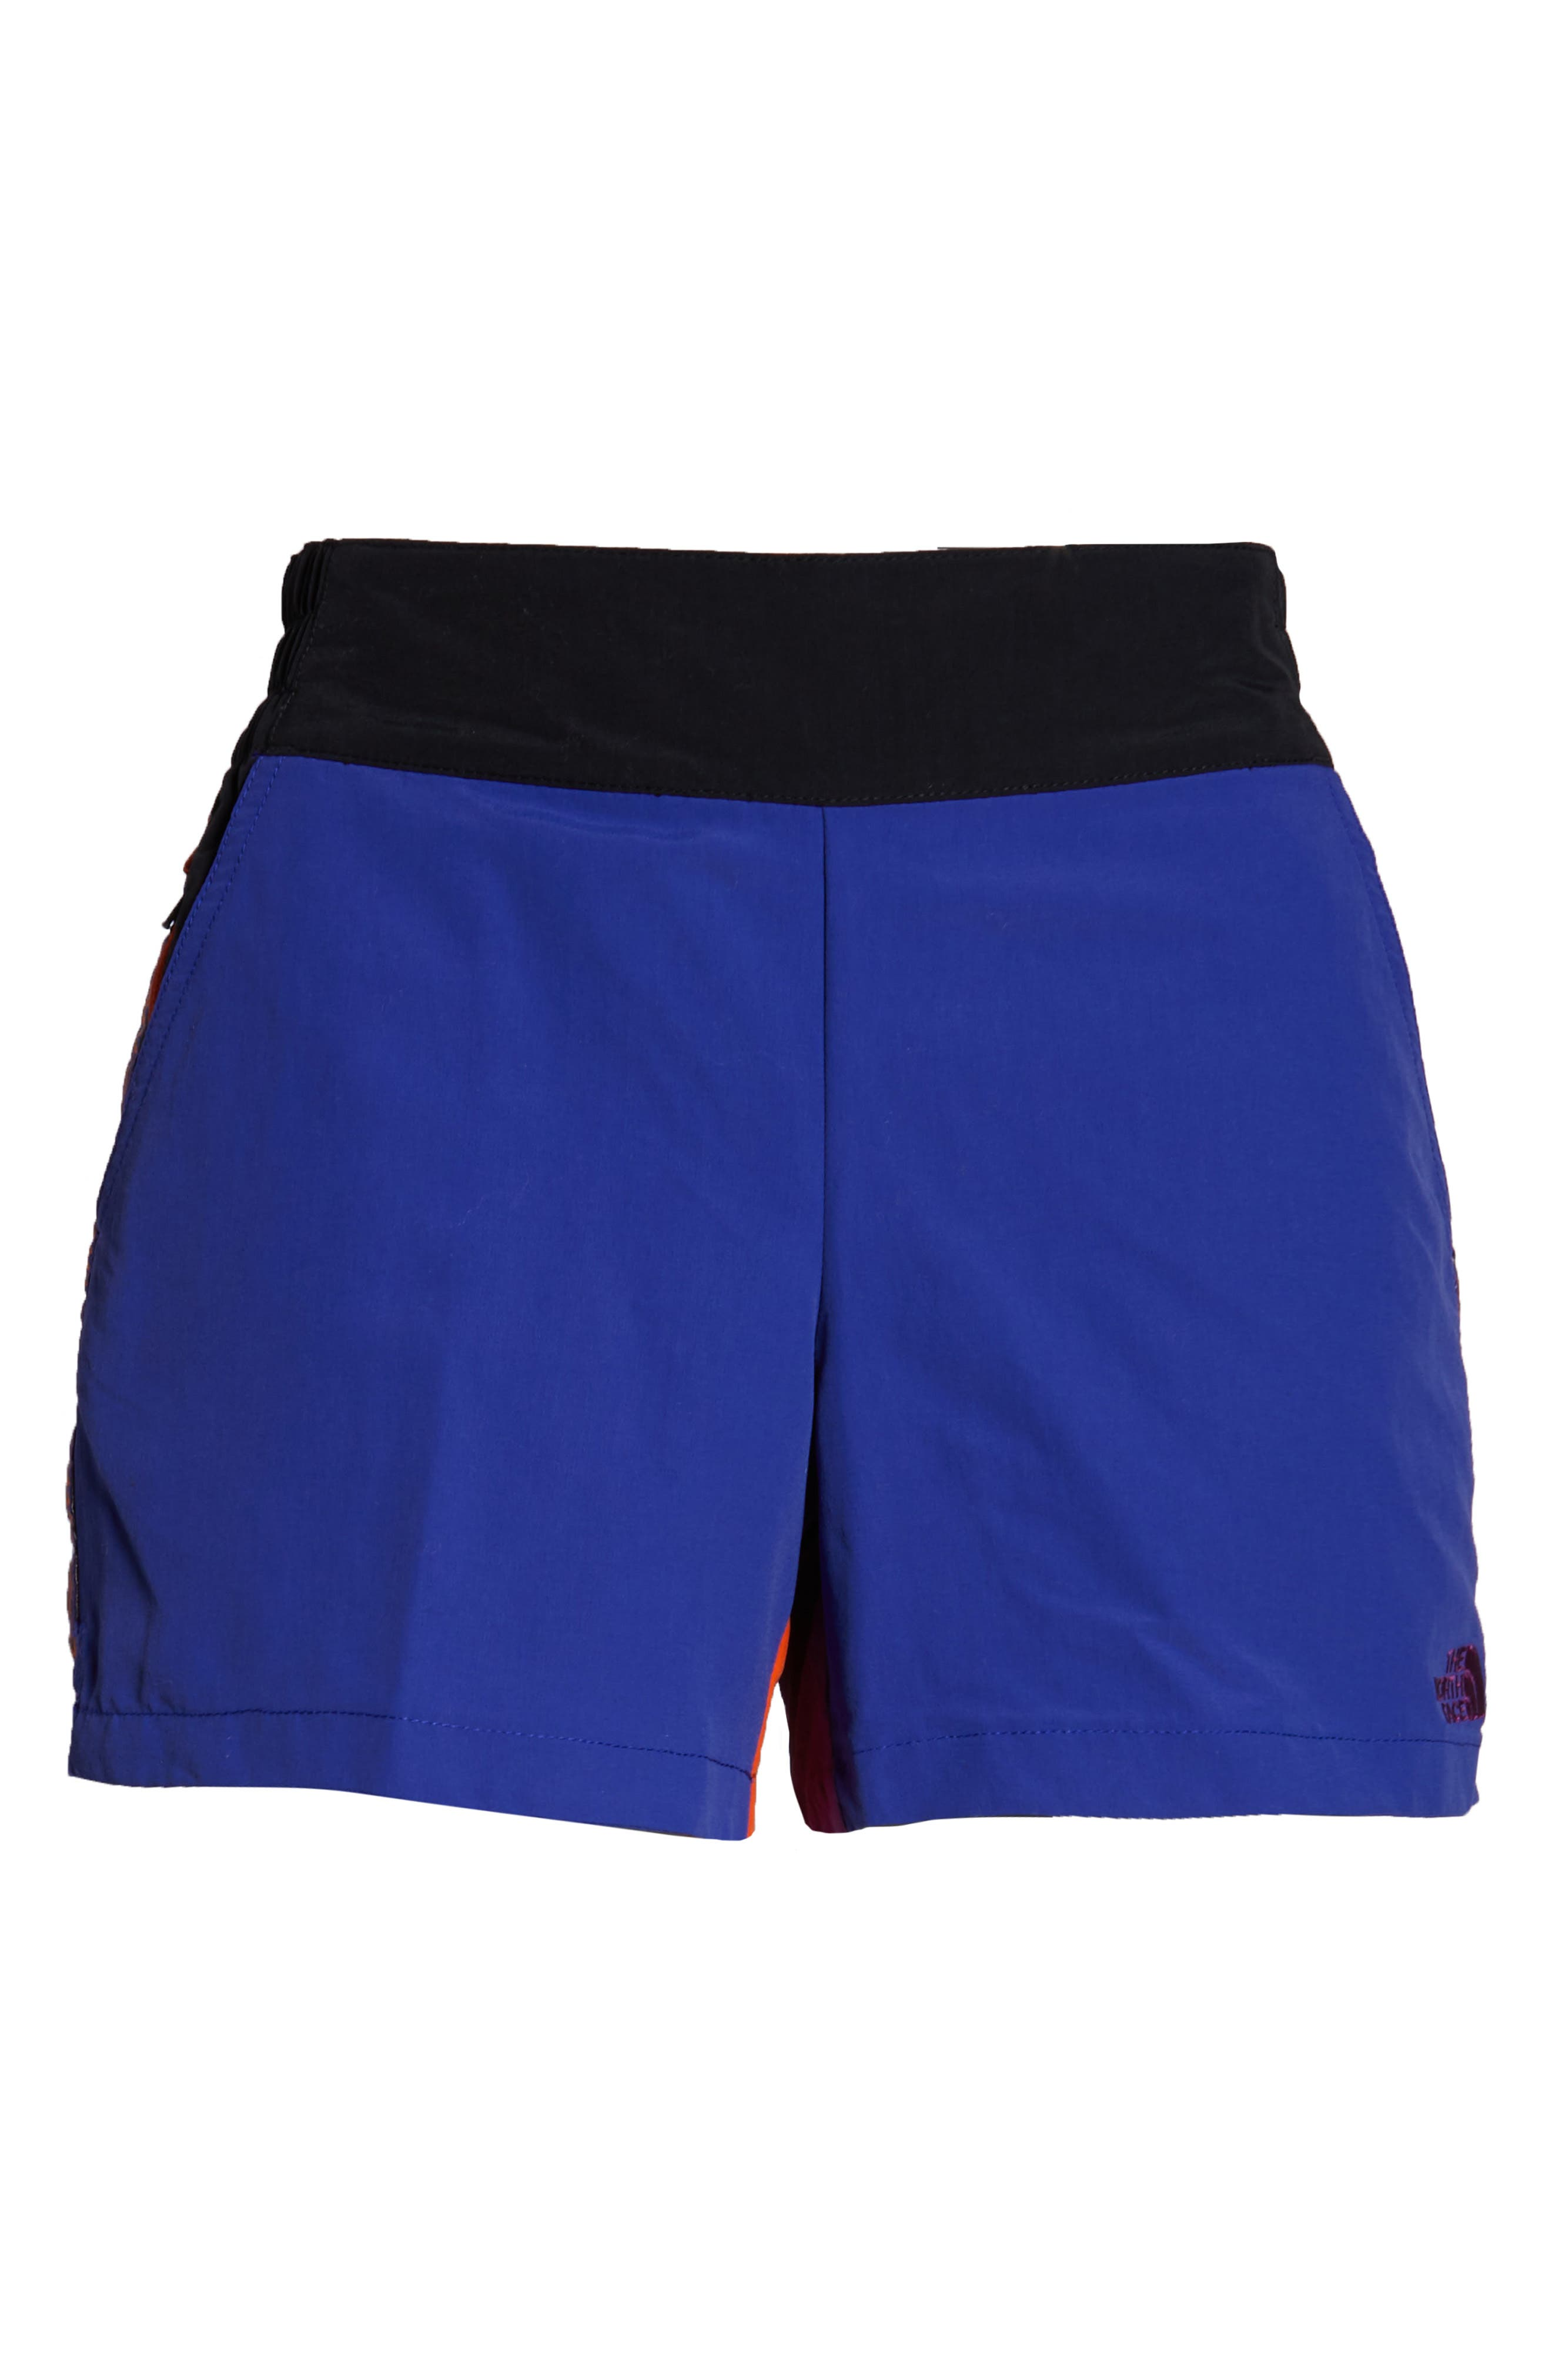 THE NORTH FACE, 92 Rage Lounger Shorts, Alternate thumbnail 3, color, AZTEC BLUE RAGE COMBO